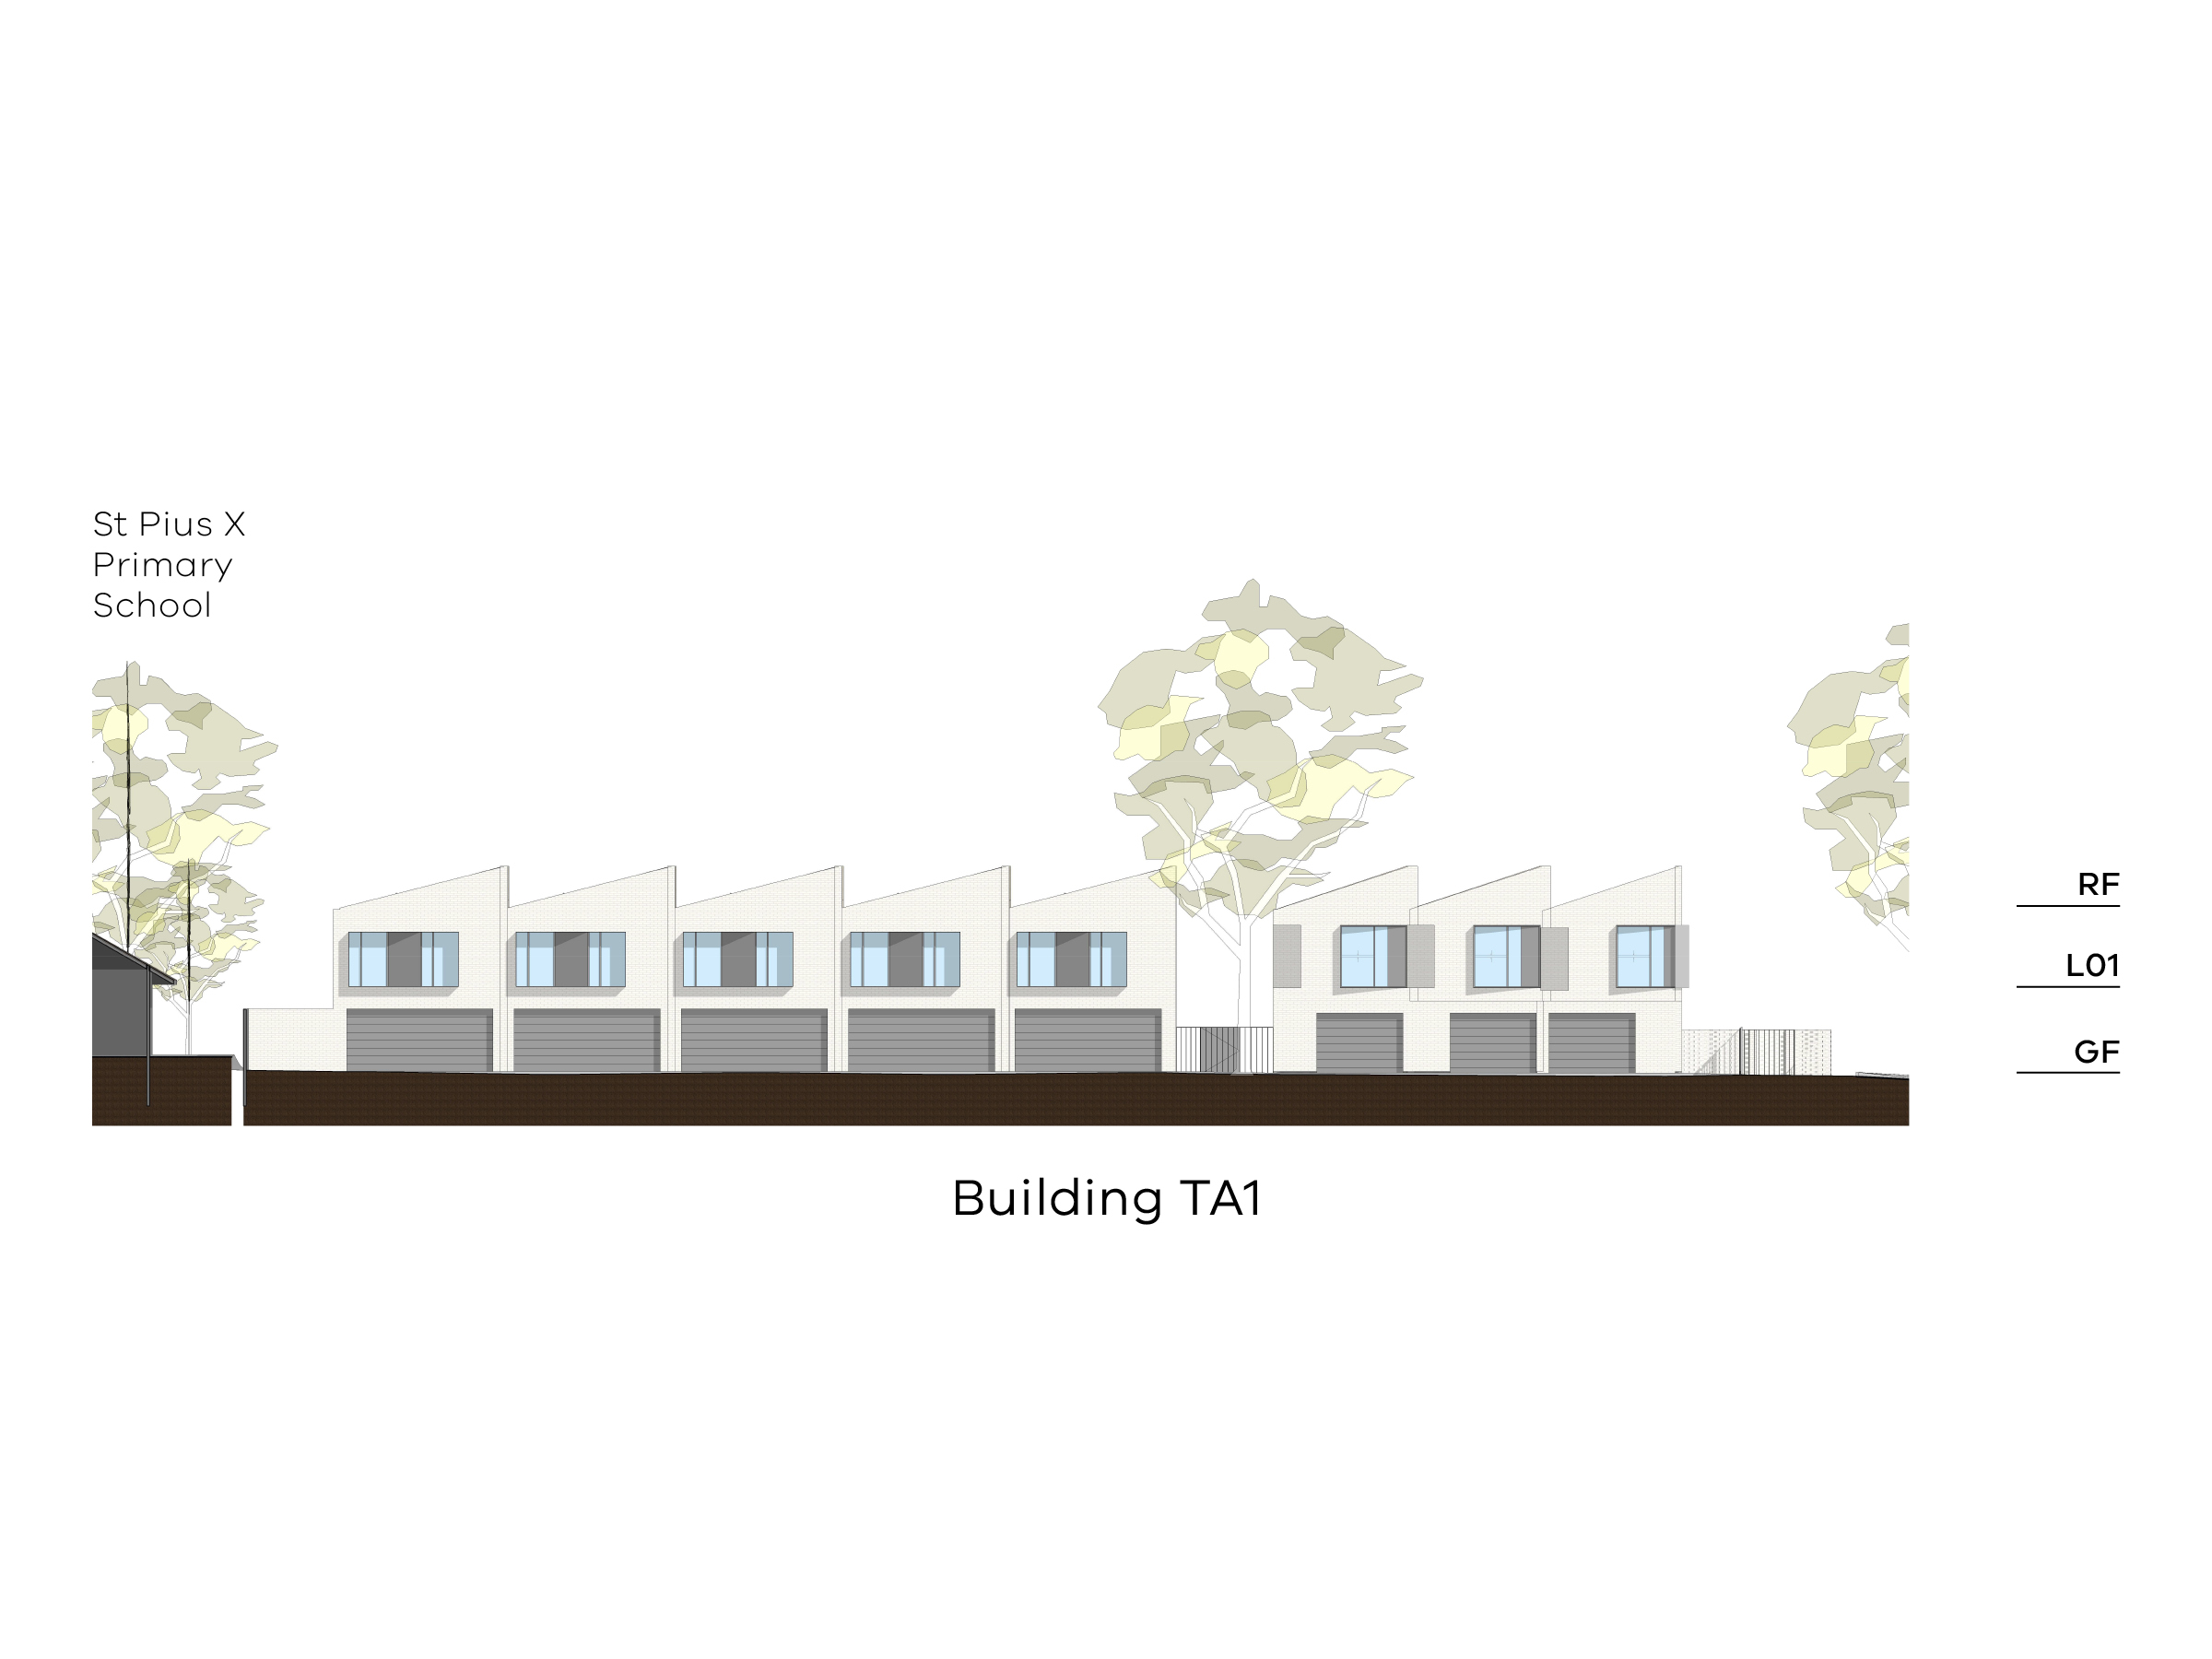 Diagram showing the height of building TA1 as seen from the paved area on site towards Tobruk Avenue. Building TA1 has a ground floor with a garage door, a level 1 and a sloped roof.